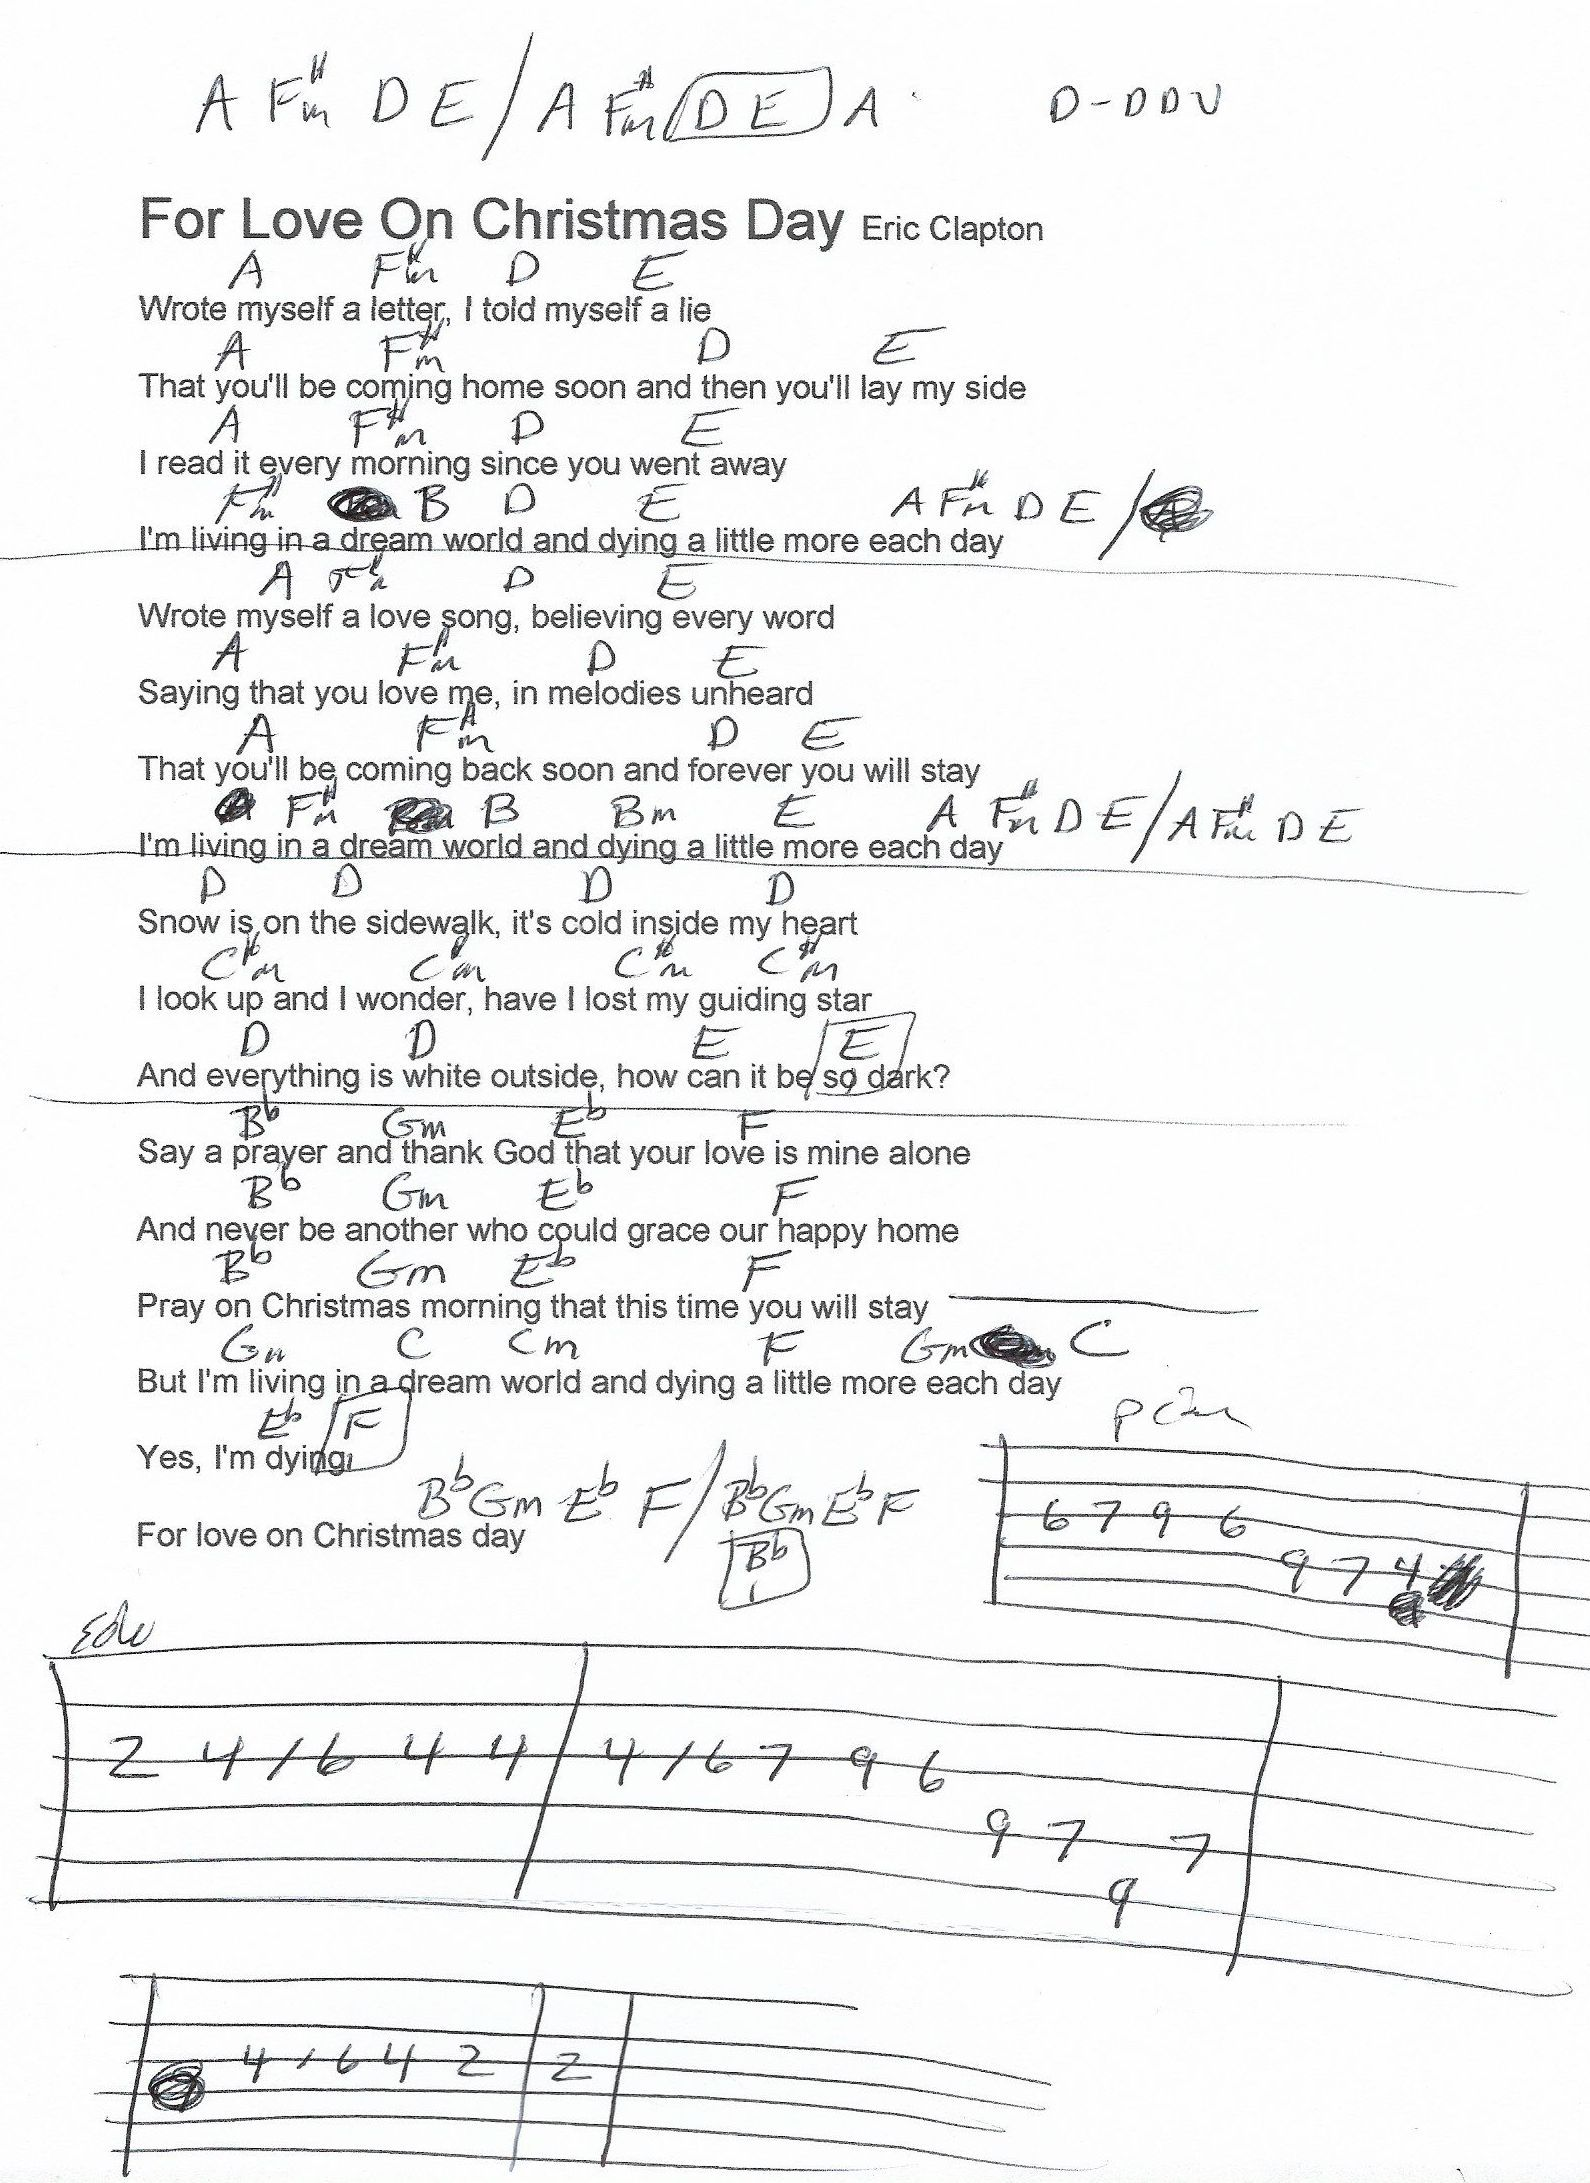 For Love on Christmas Day (Eric Clapton) Guitar Chord Chart   Eric clapton guitar, Guitar chord ...